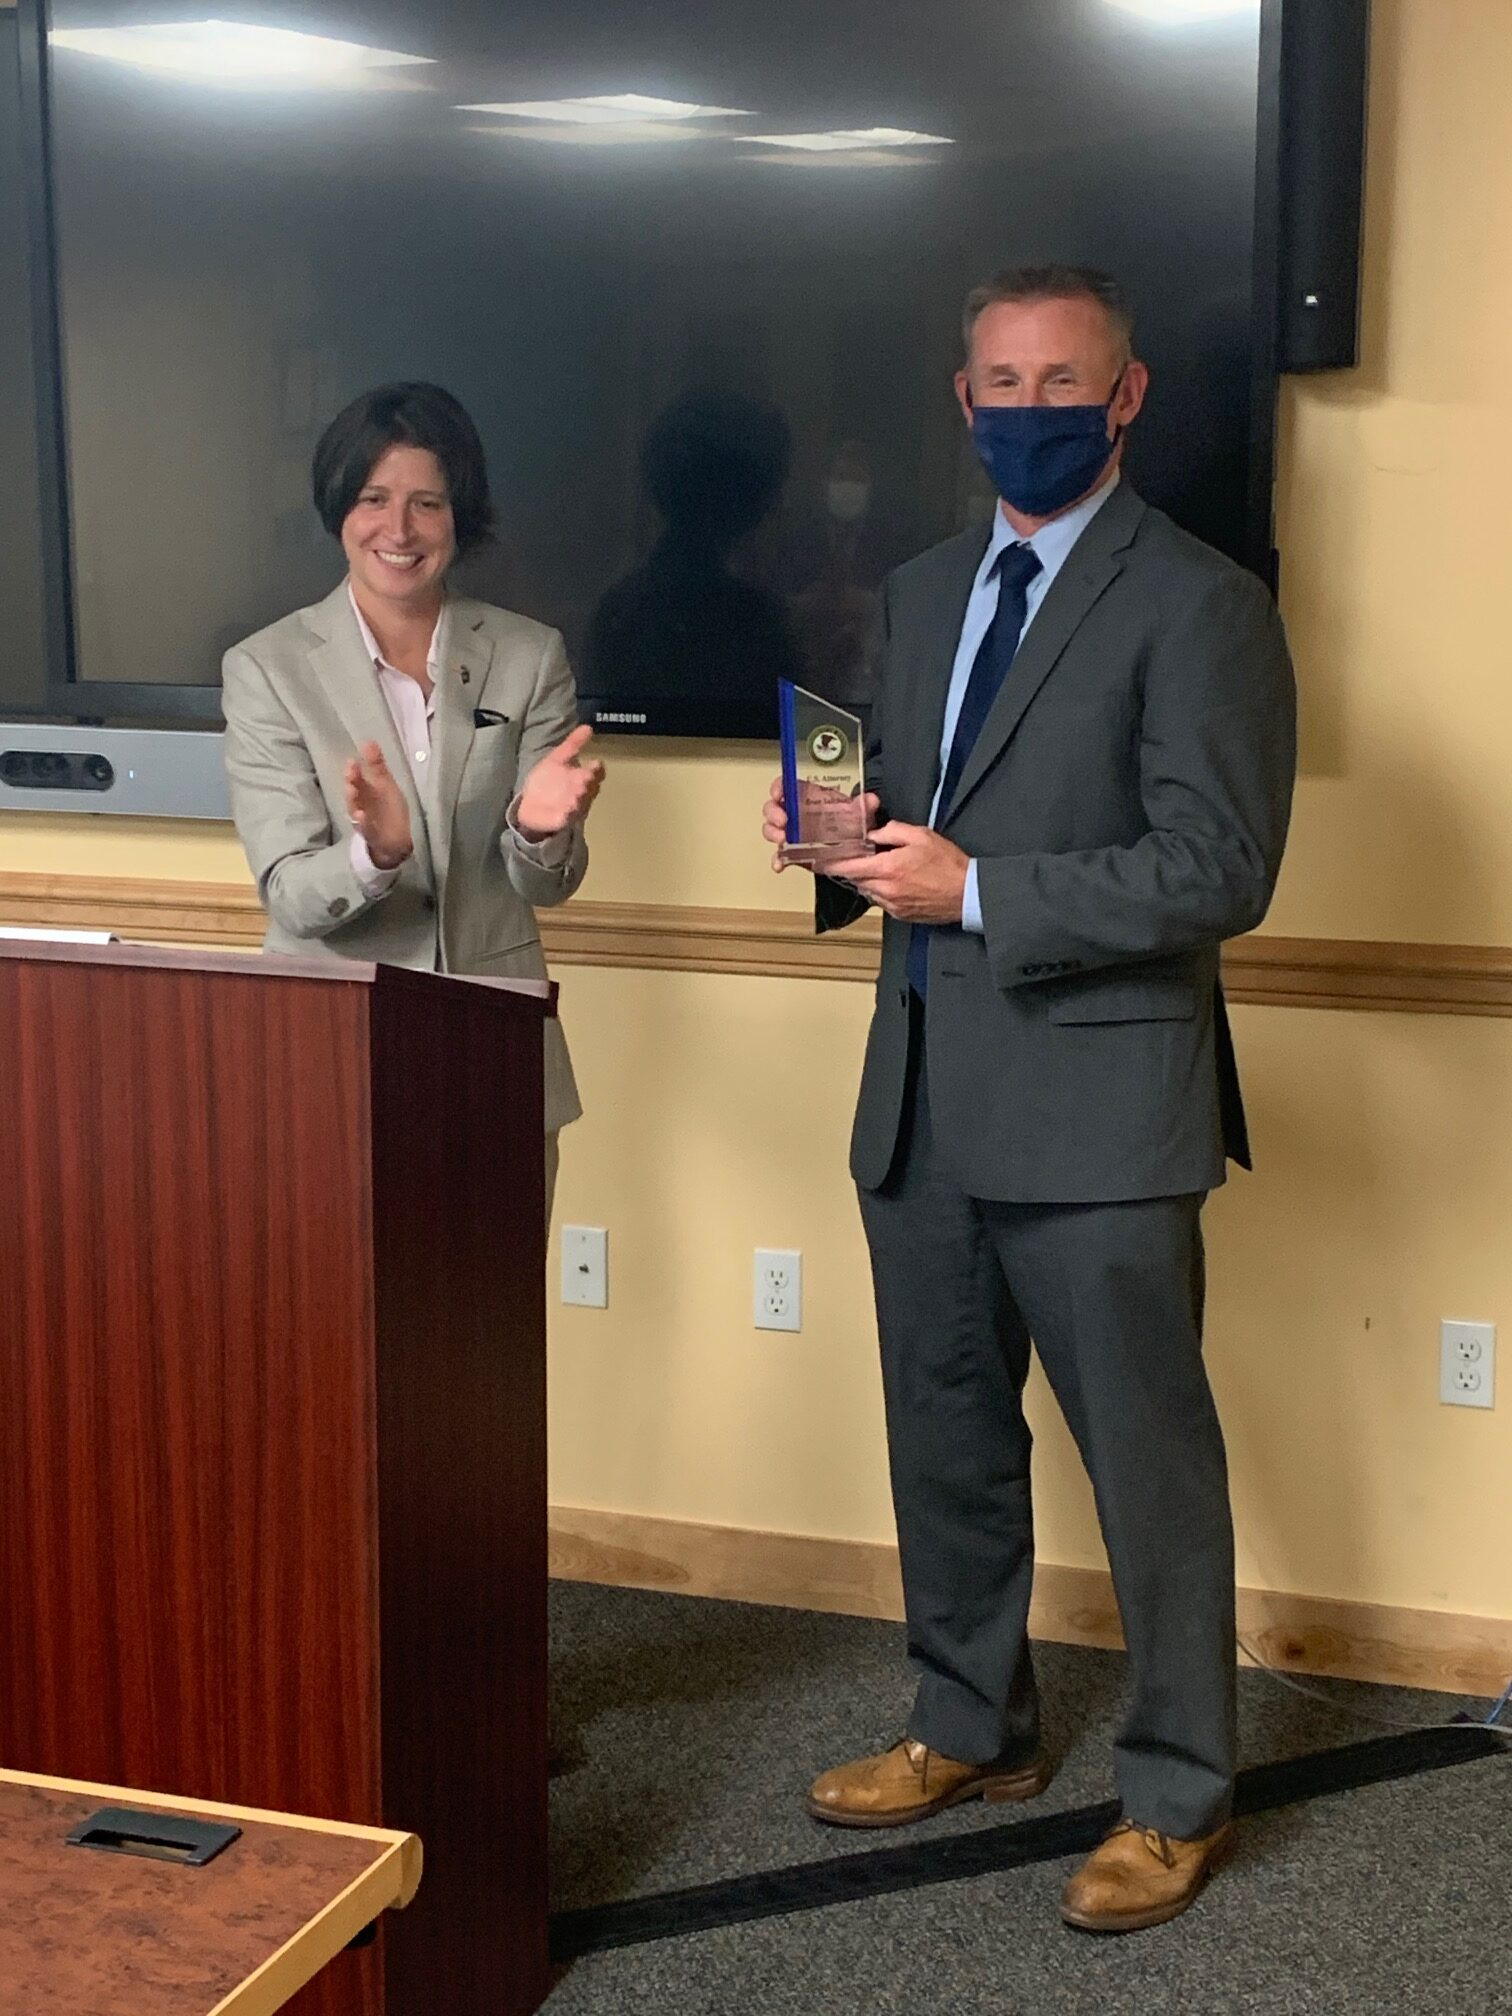 US Attorney Christina Nolan presenting SA Sultzbaugh with award (Department of State photo)